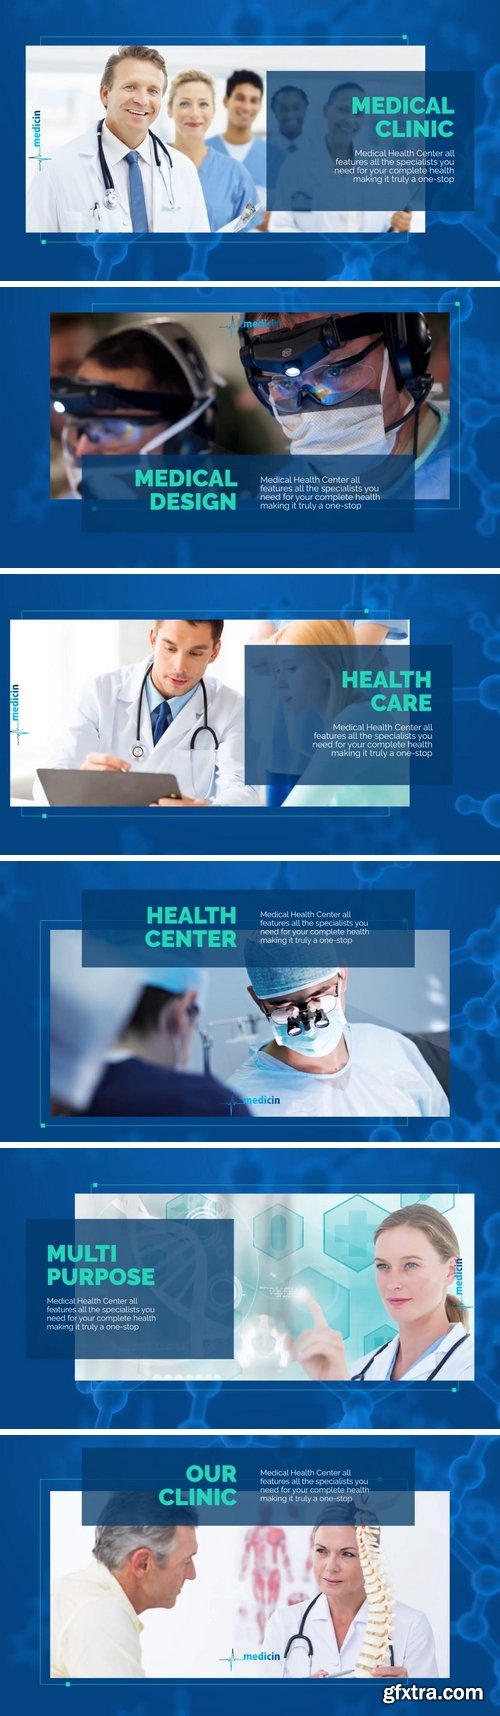 MA - Medical Promo After Effects Templates 150309